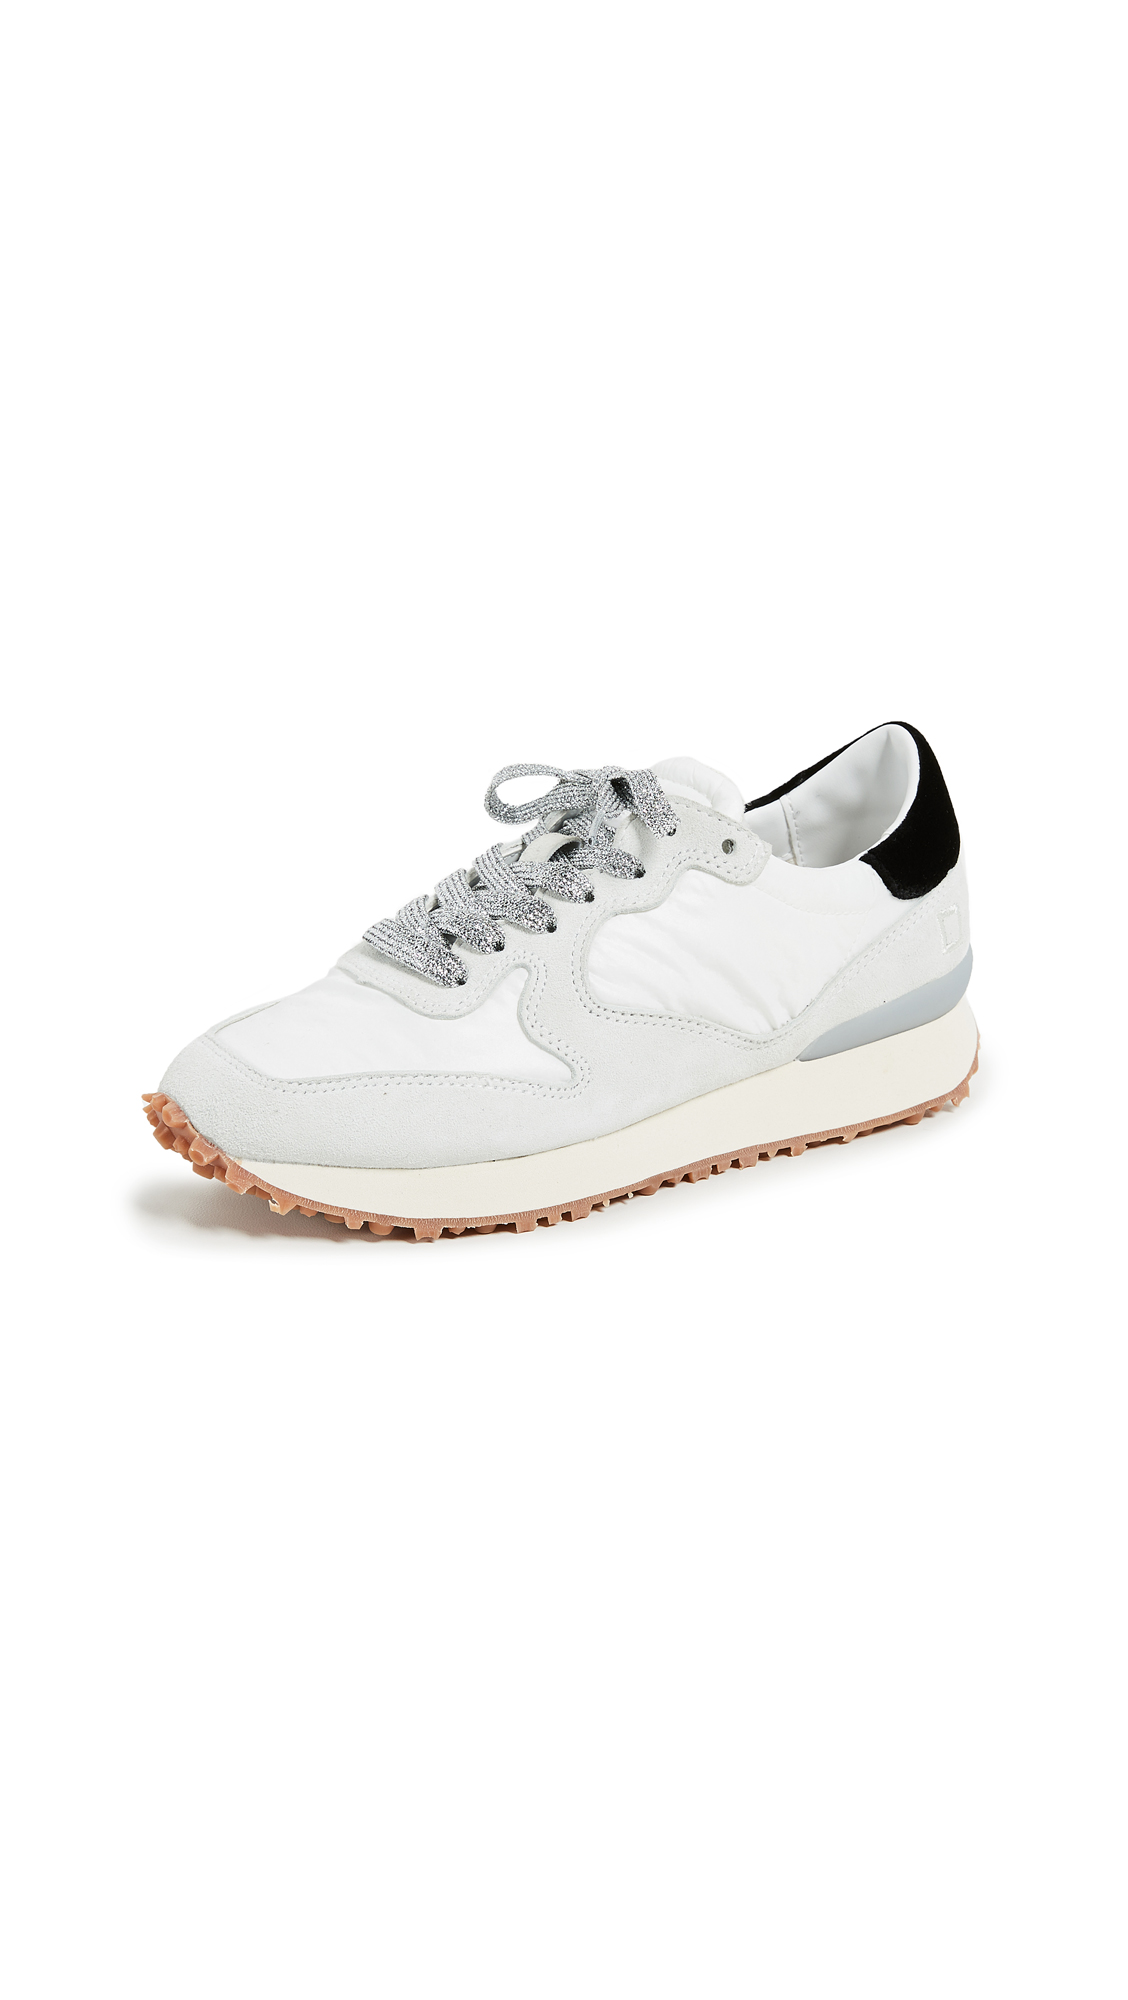 D.A.T.E. Spike Sneakers - White